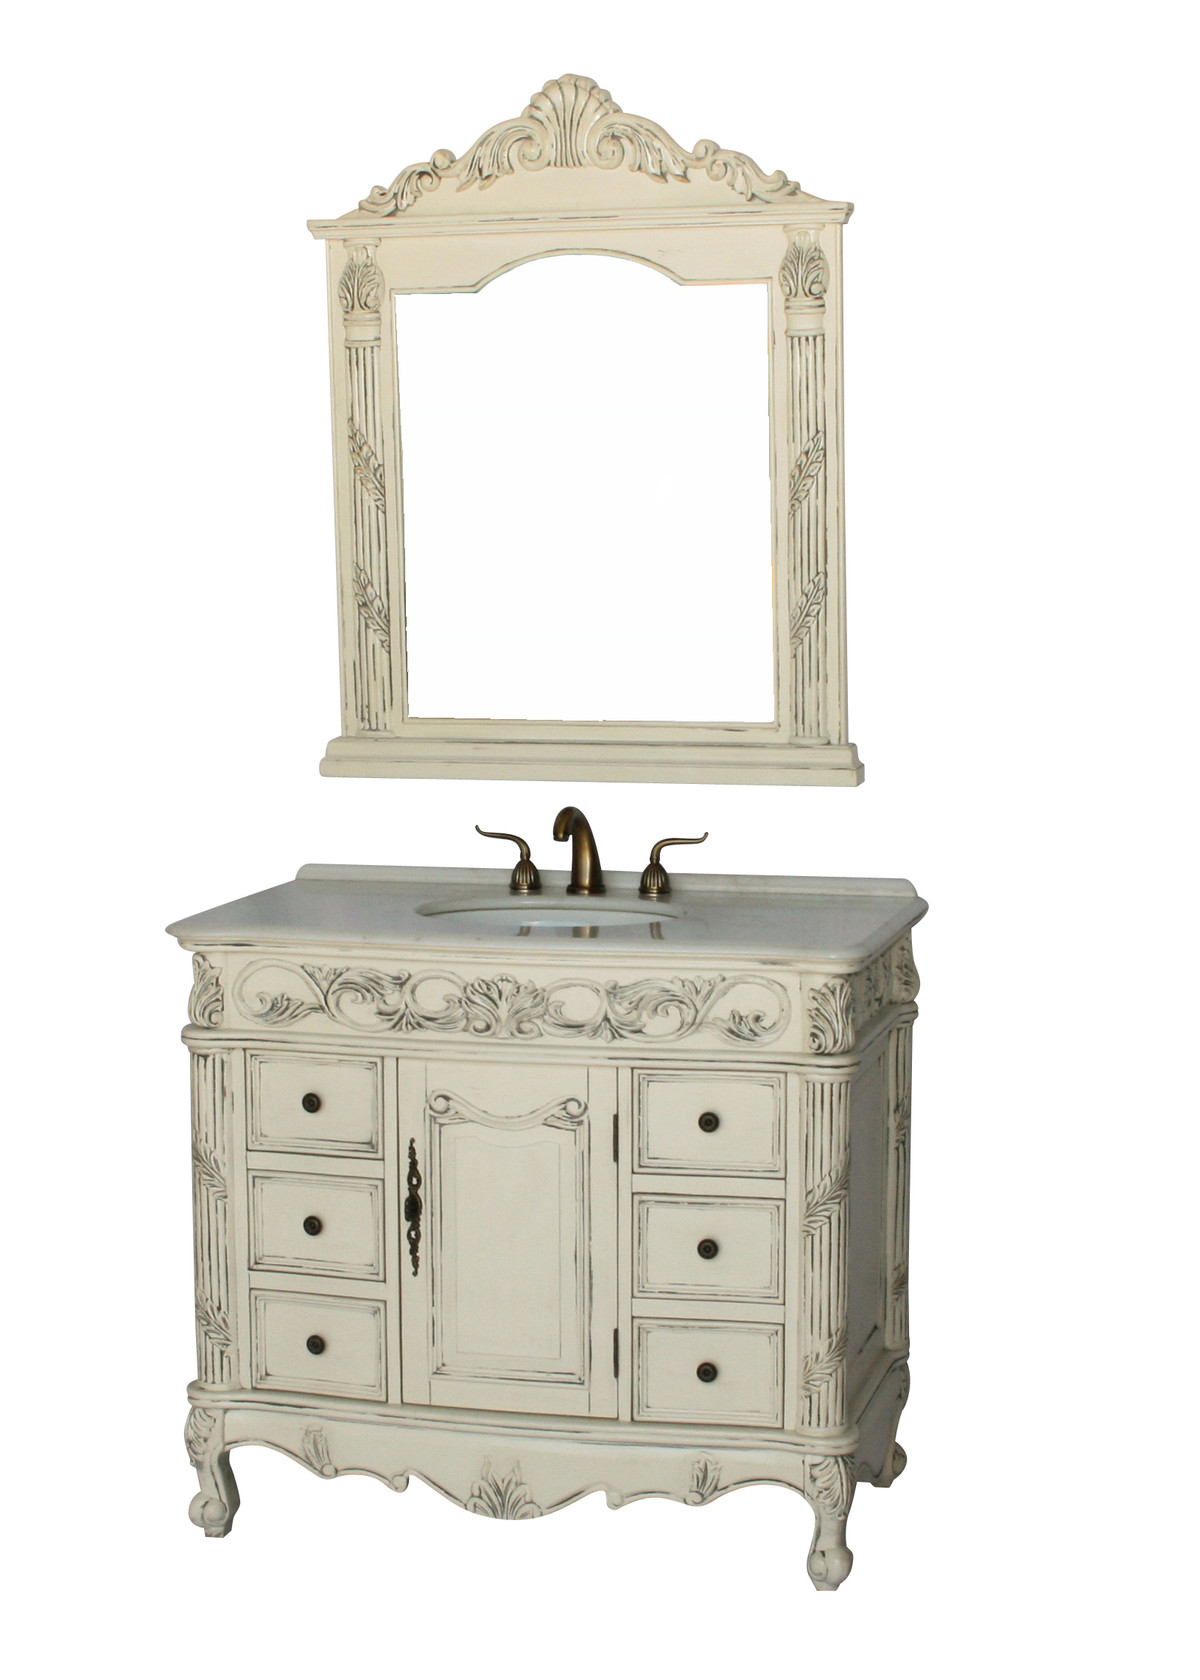 "40"" Adelina Antique Style Single Sink Bathroom Vanity in Antique White Finish with Imperial White Stone Countertop"